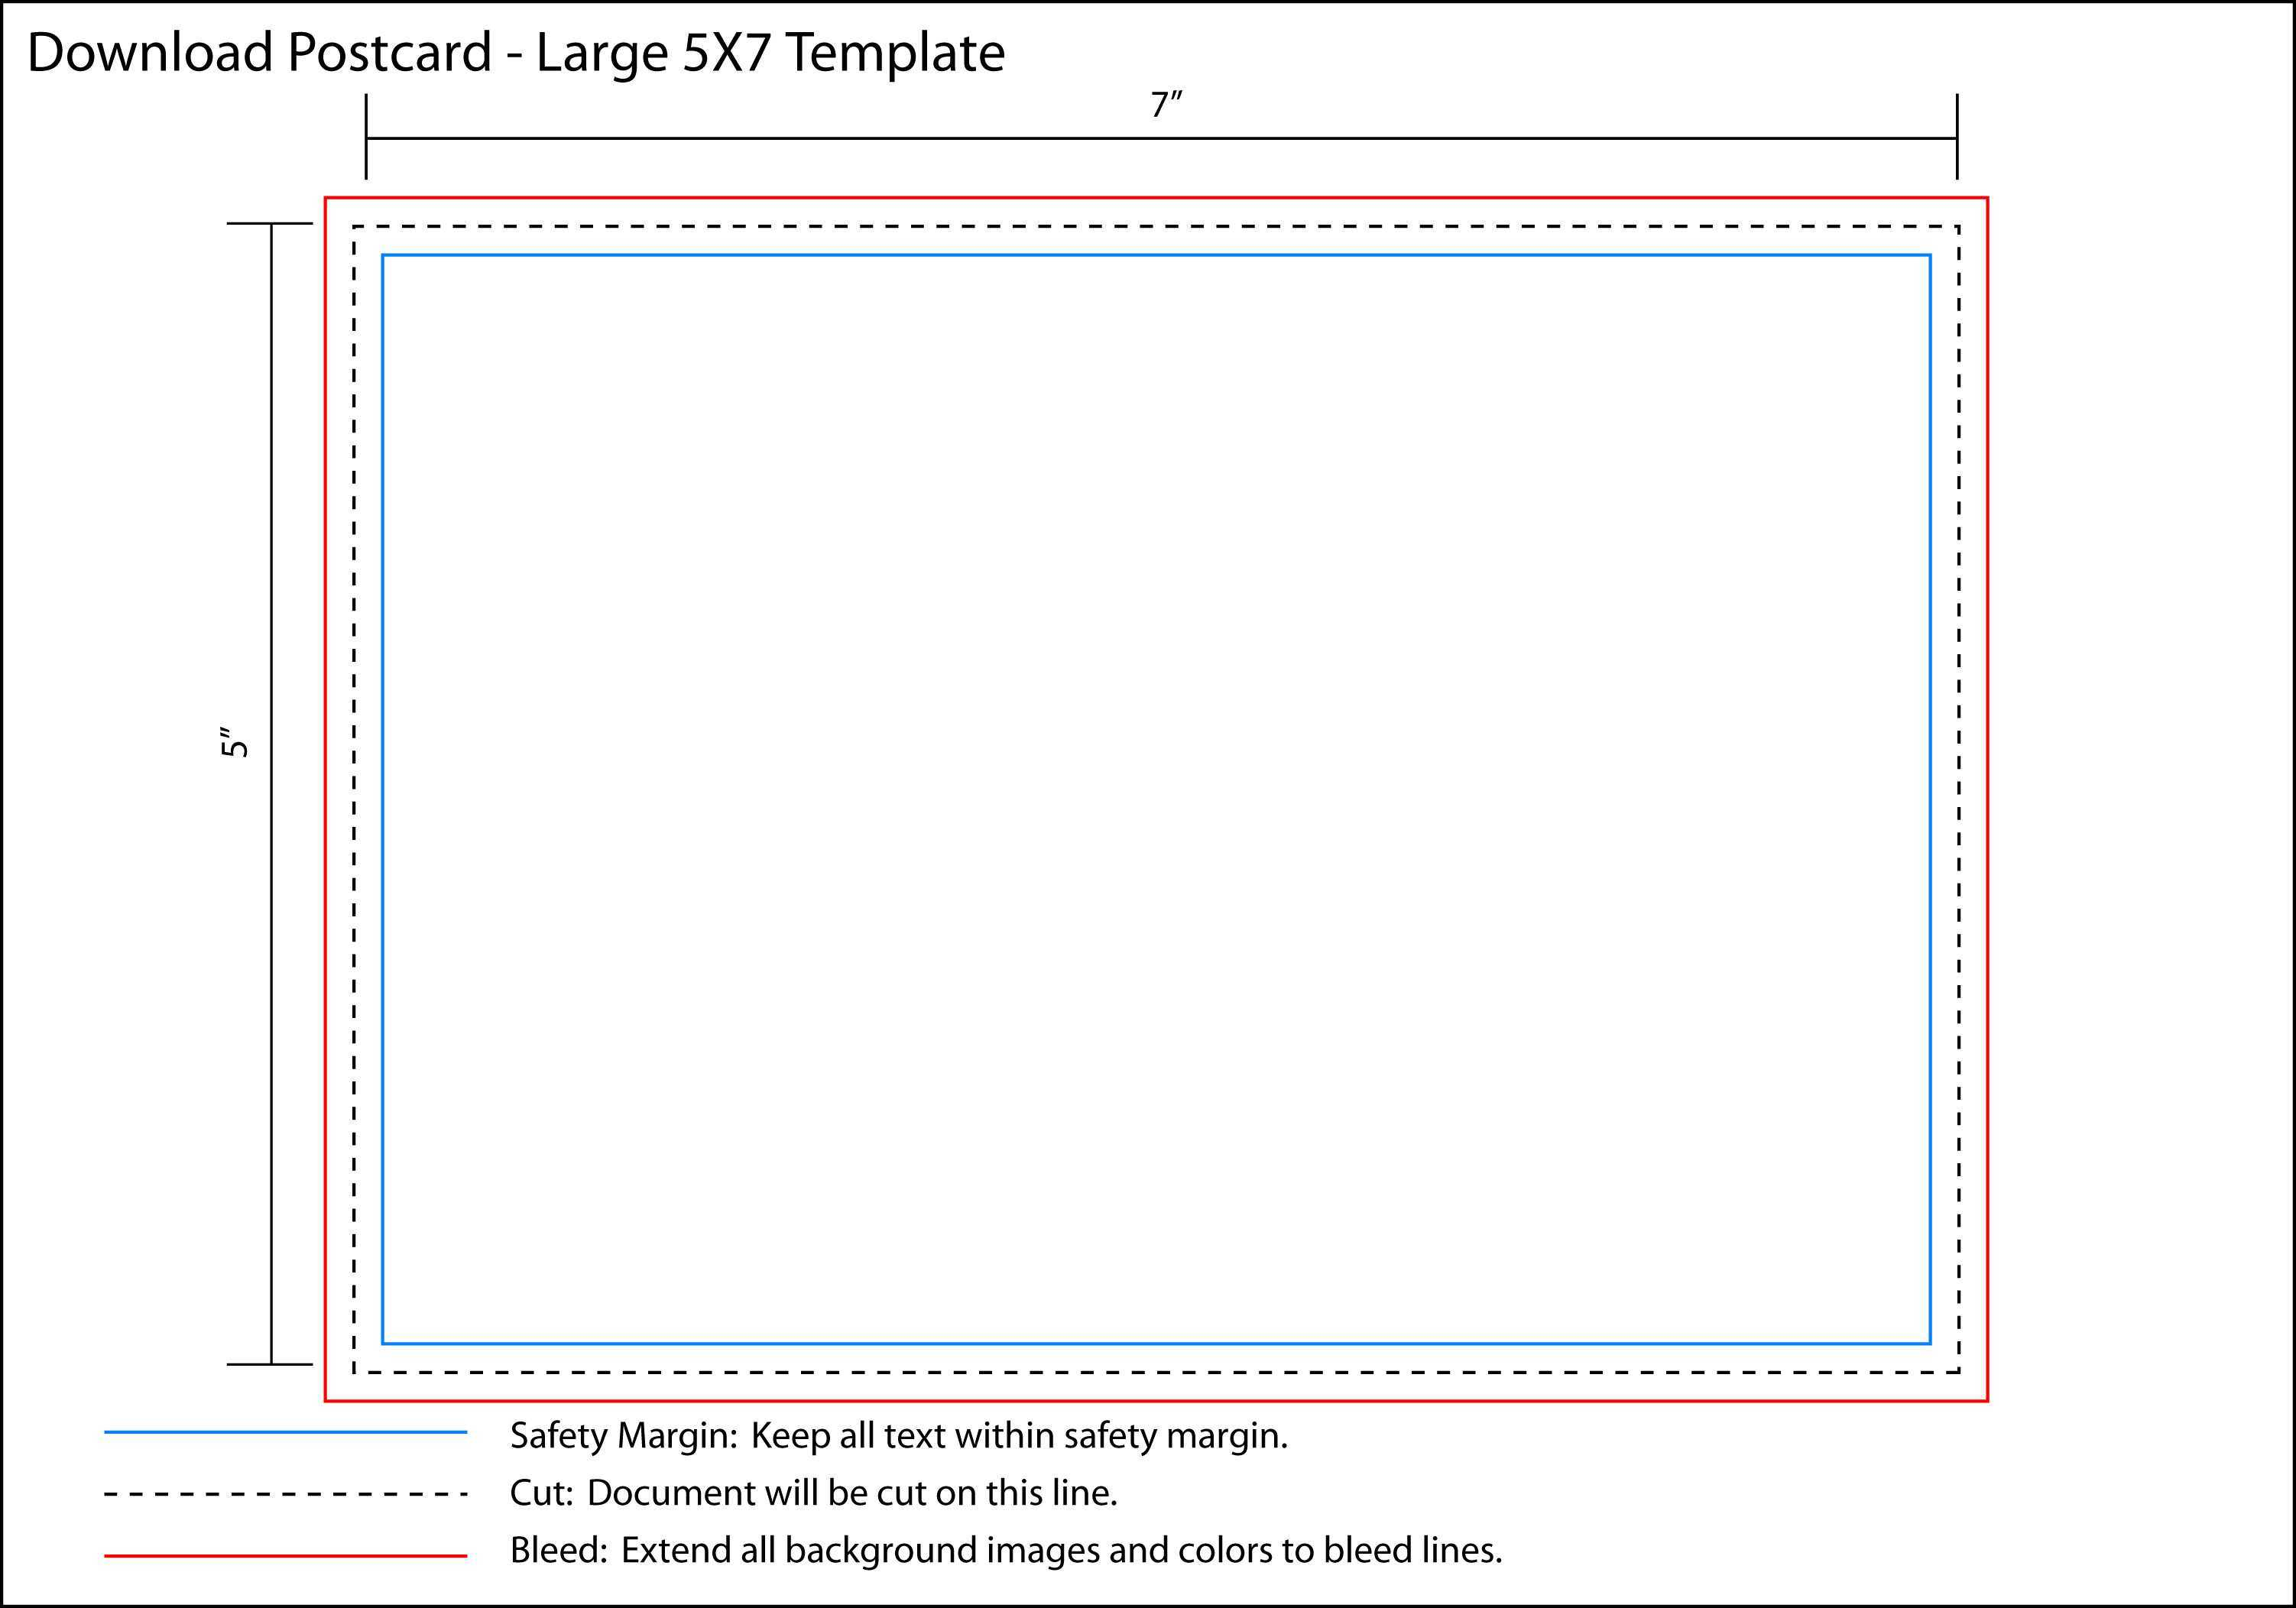 Index Card Template Open Office - Atlantaauctionco Intended For Open Office Index Card Template